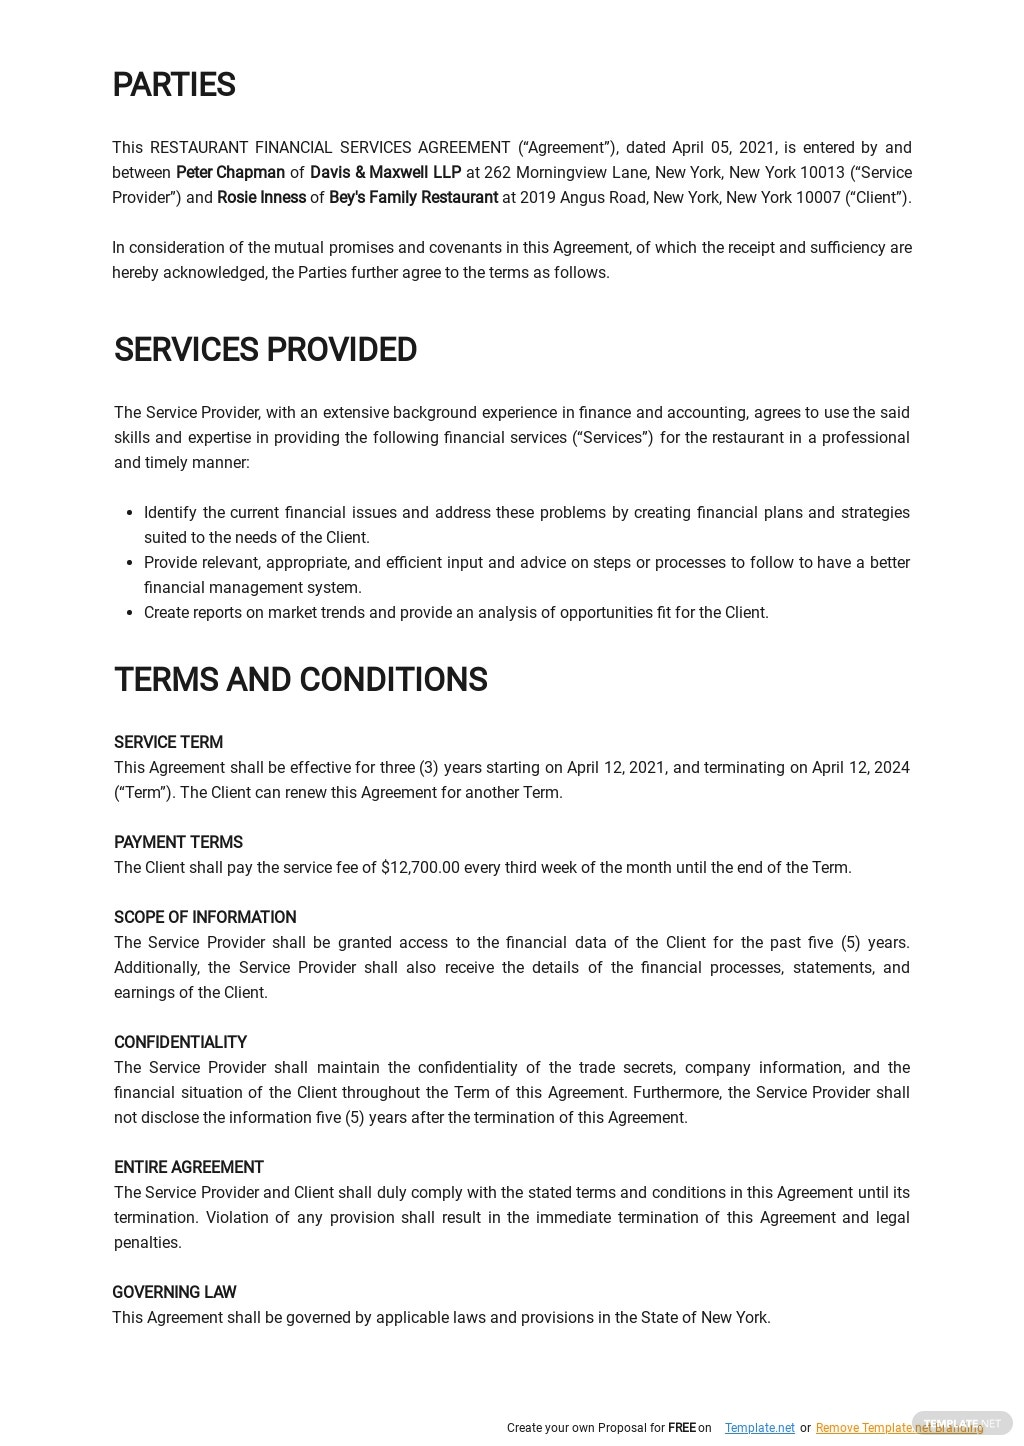 Restaurant Financial Services Agreement Template [Free PDF] - Google Docs, Word, Apple Pages, PDF